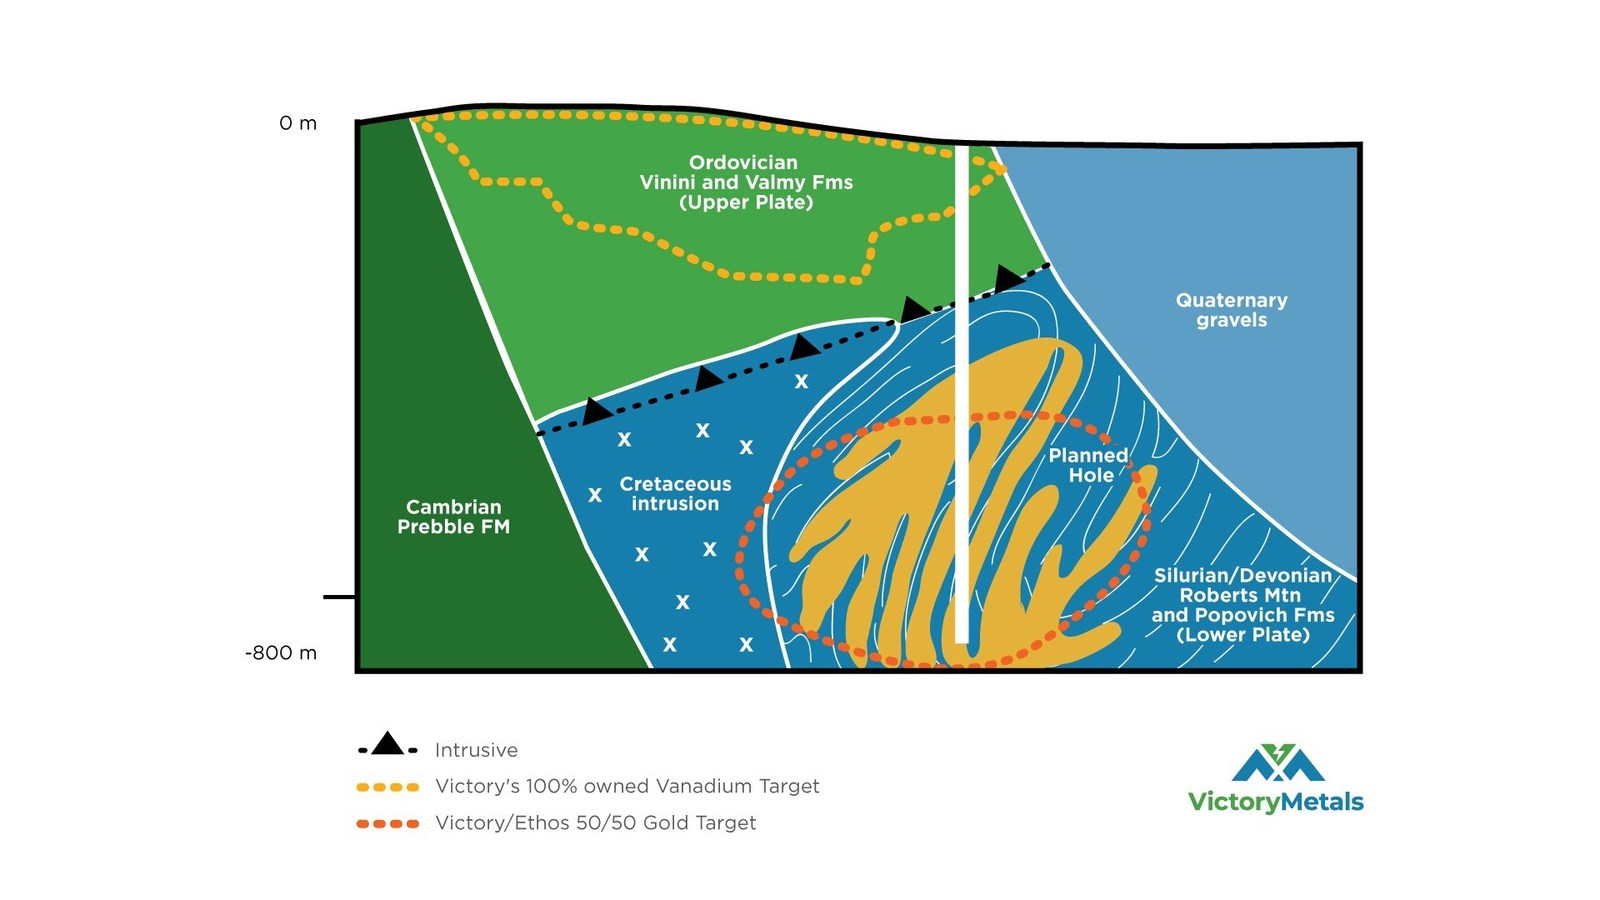 Figure 2: North looking cross section, which illustrates the deeper geological interpretation at Iron Point, including the conceptual Carlin style gold target.